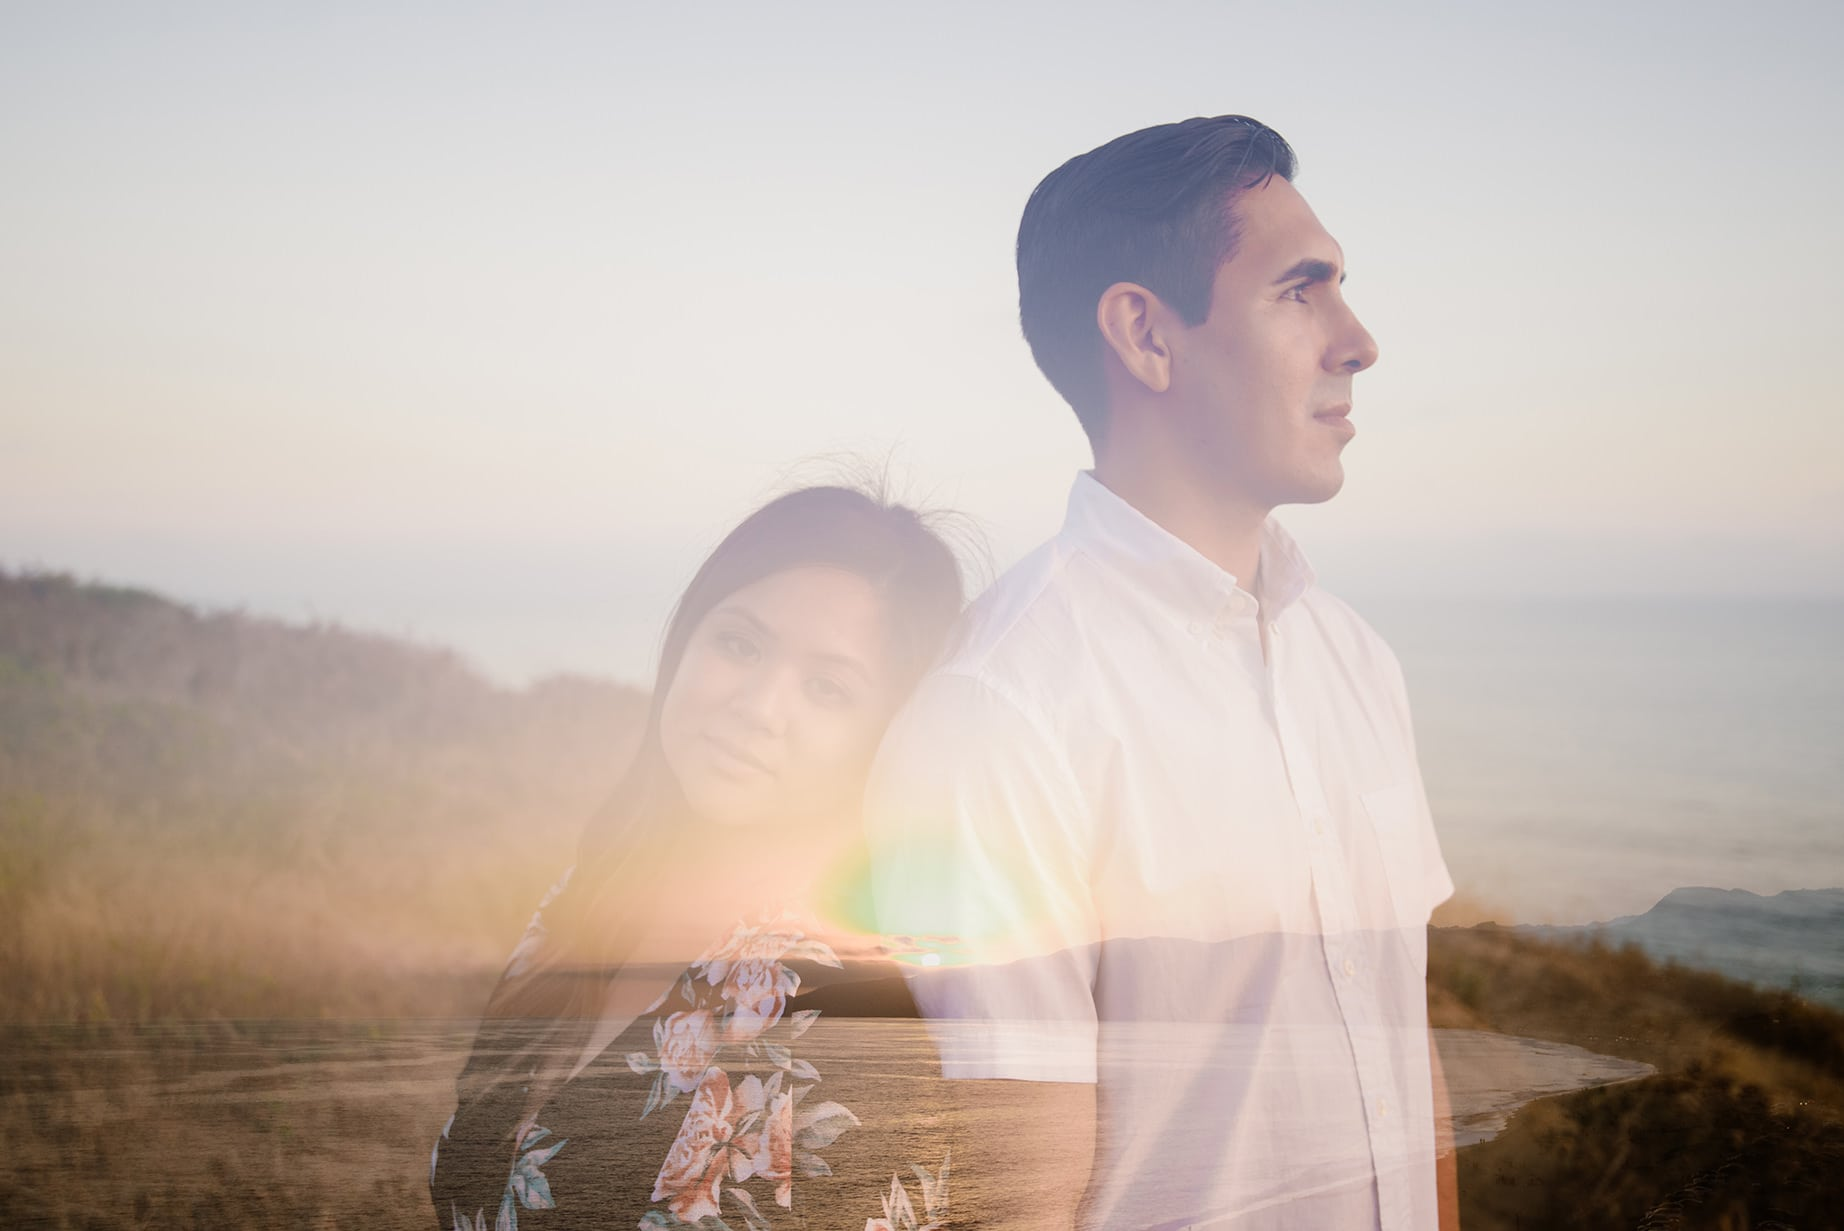 A Julie Pepin photo depicting a double exposed image with a woman leaning on a man as they are back to back. The man looks away and the woman looks at you. The second exposure is of a sunset over water